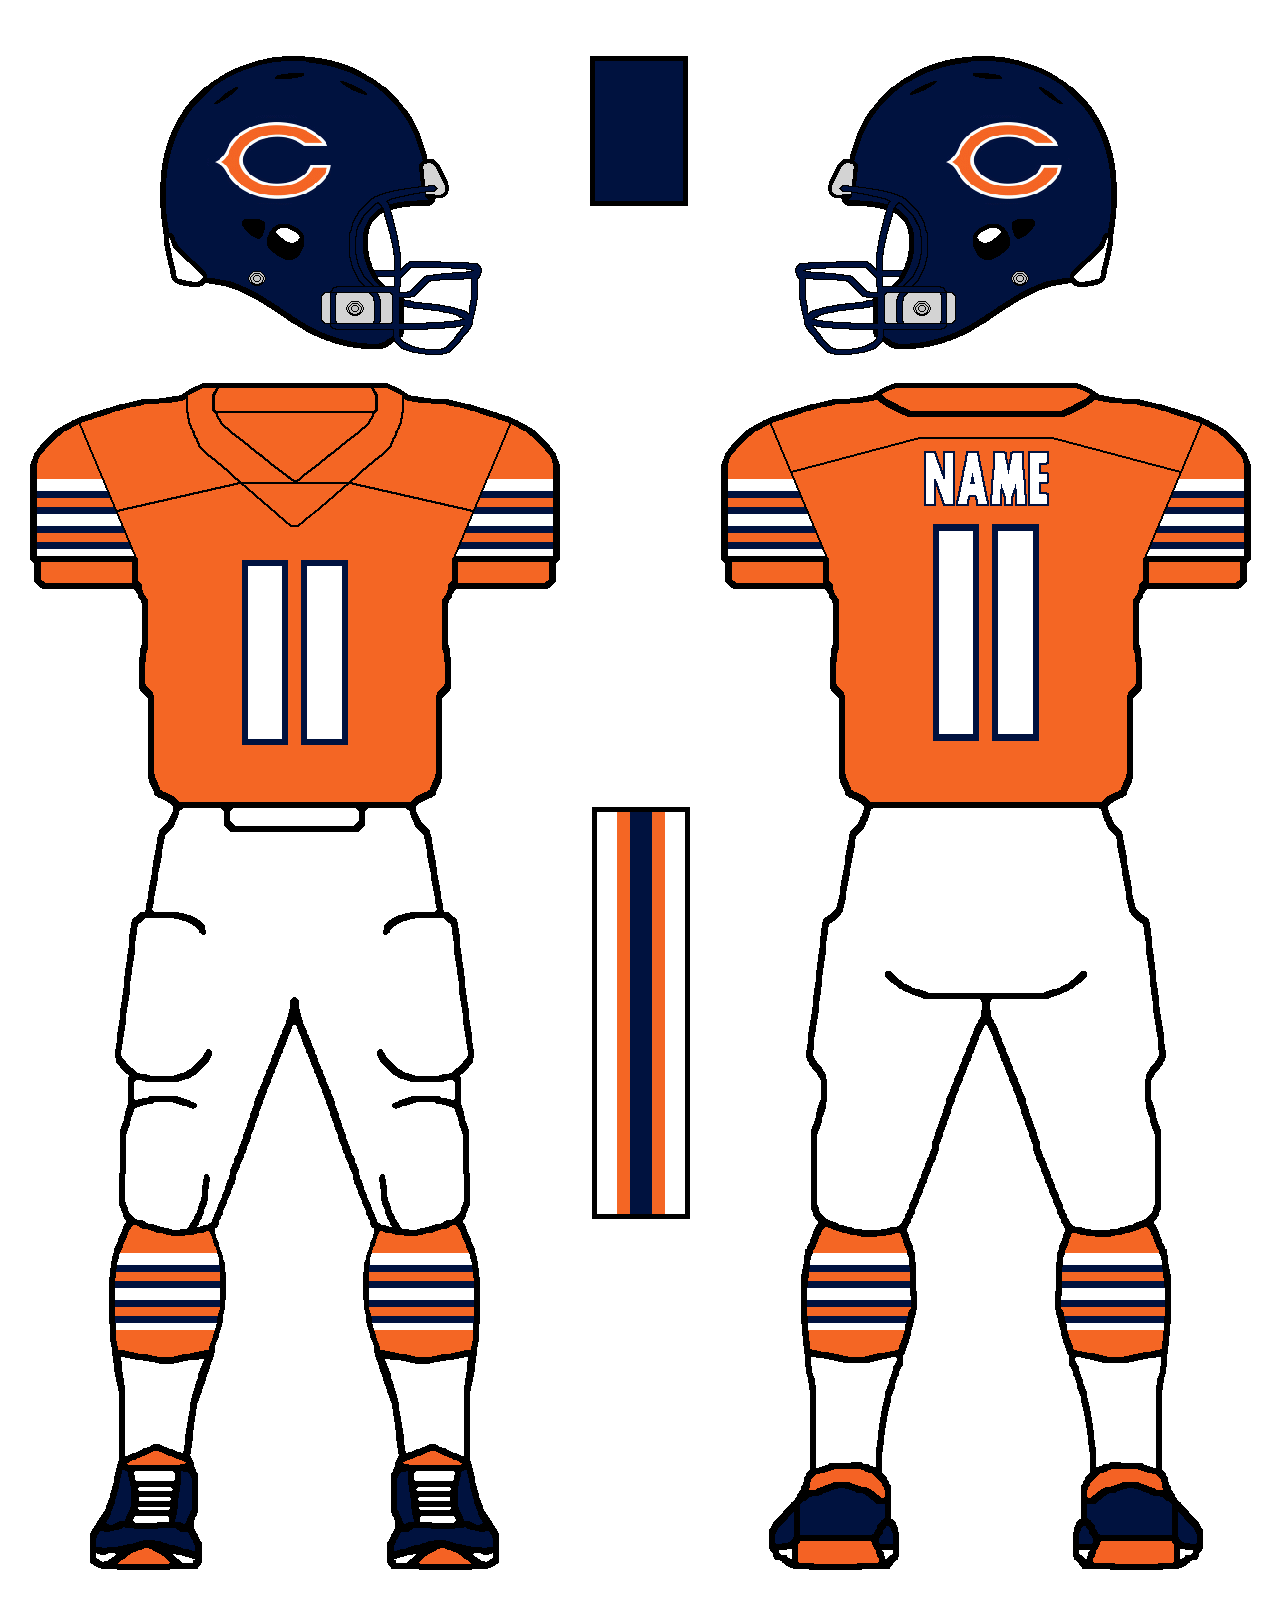 BEARS_ALTERNATE_1.png